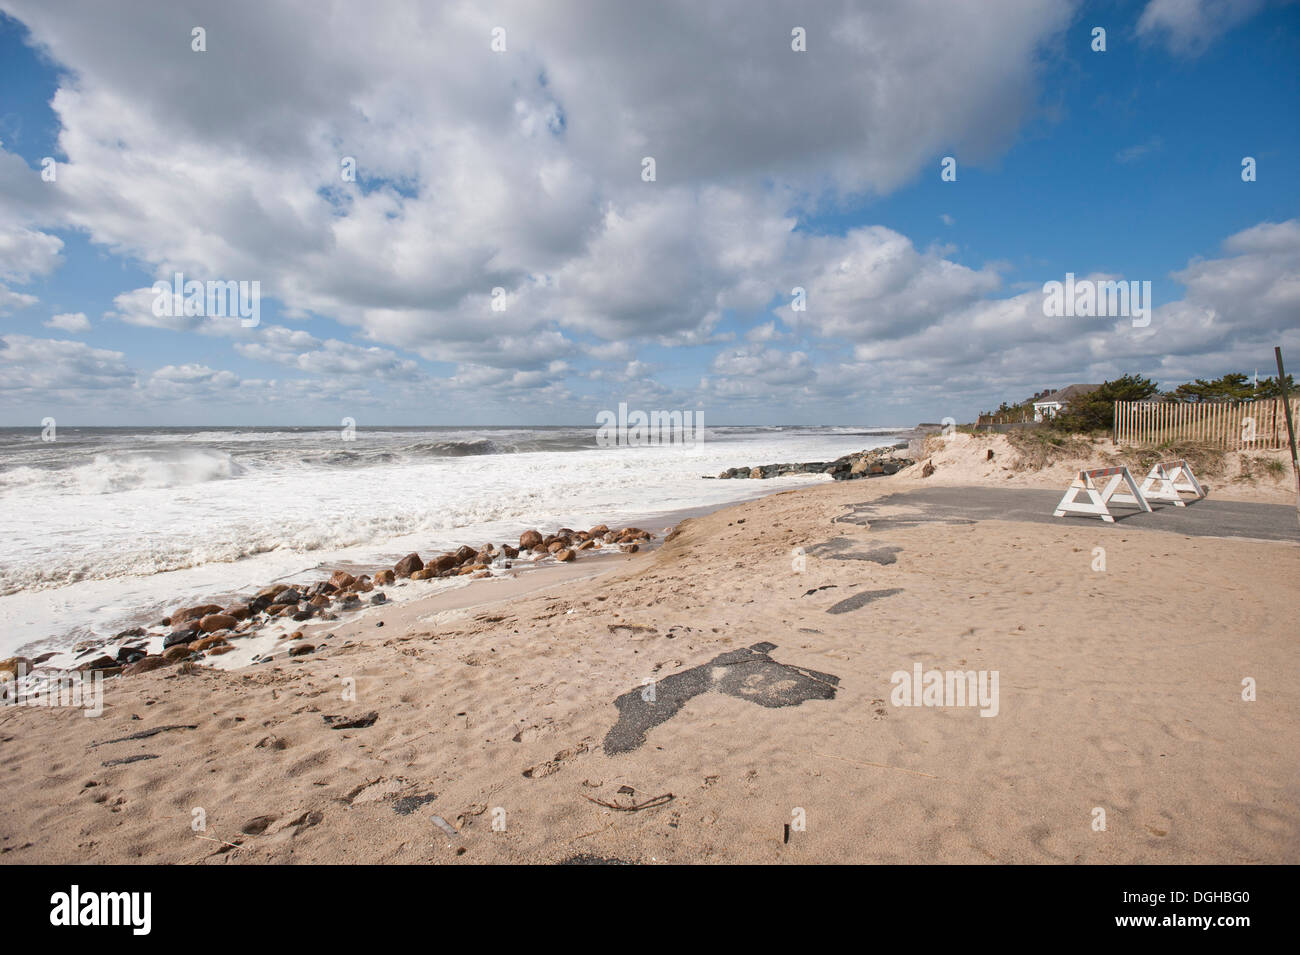 Erosion visible at Georgica Beach in East Hampton, NY,  Photo by Gordon M. Grant - Stock Image